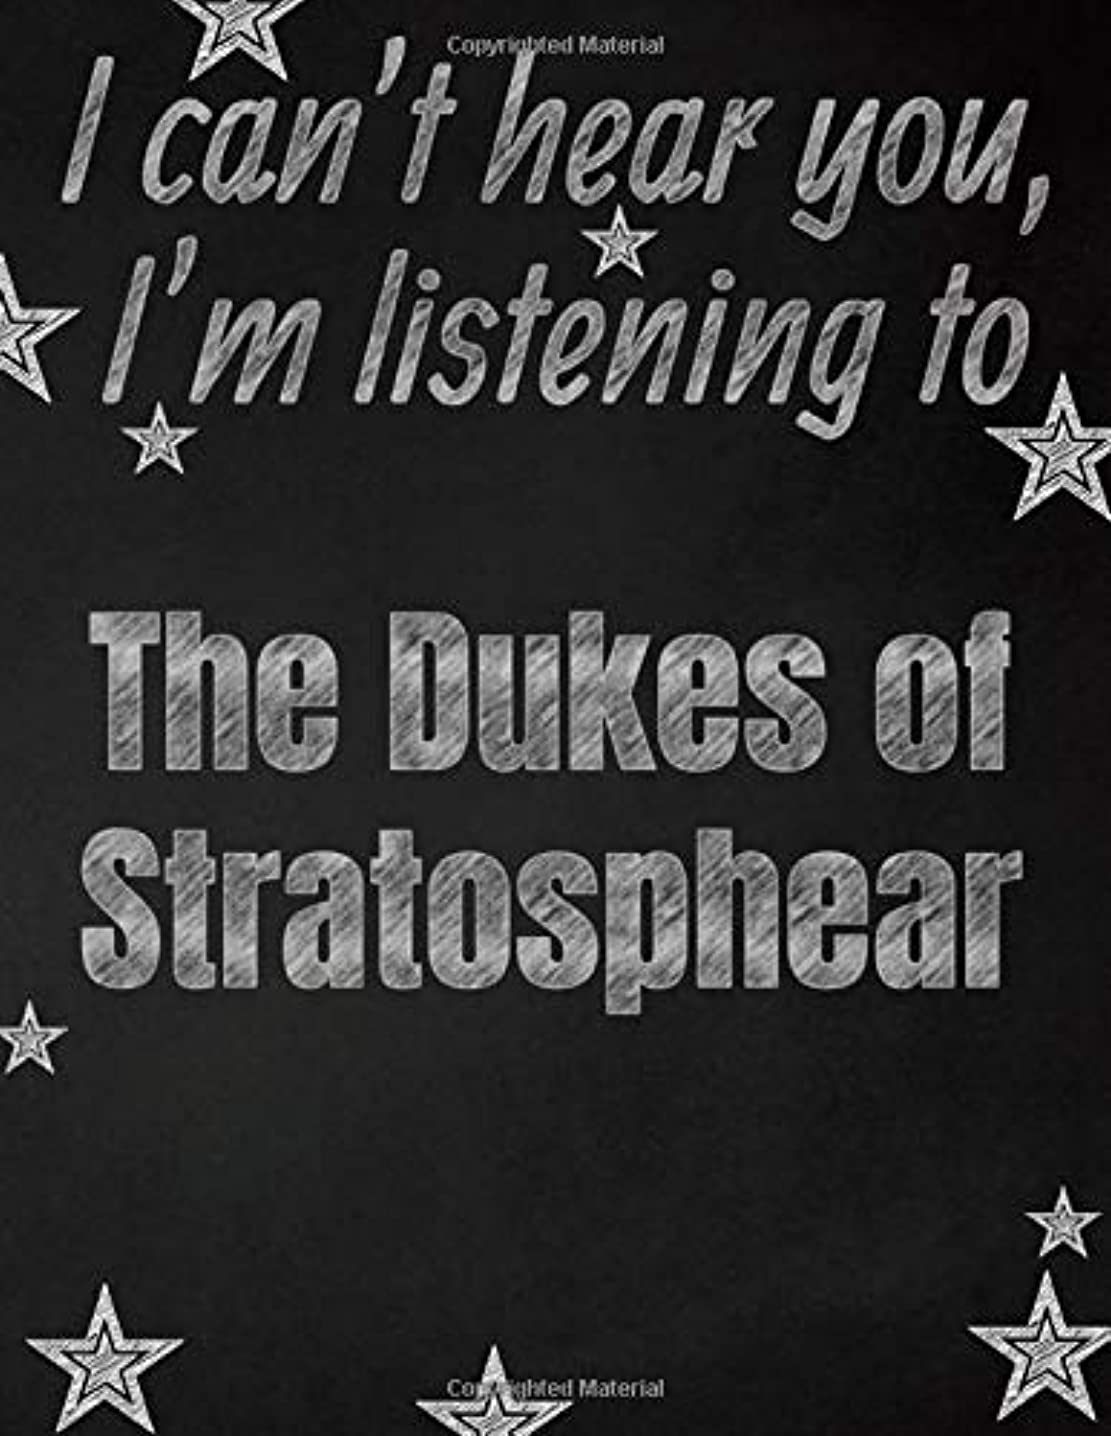 パース経験回答I can't hear you, I'm listening to The Dukes of Stratosphear creative writing lined notebook: Promoting band fandom and music creativity through writing…one day at a time